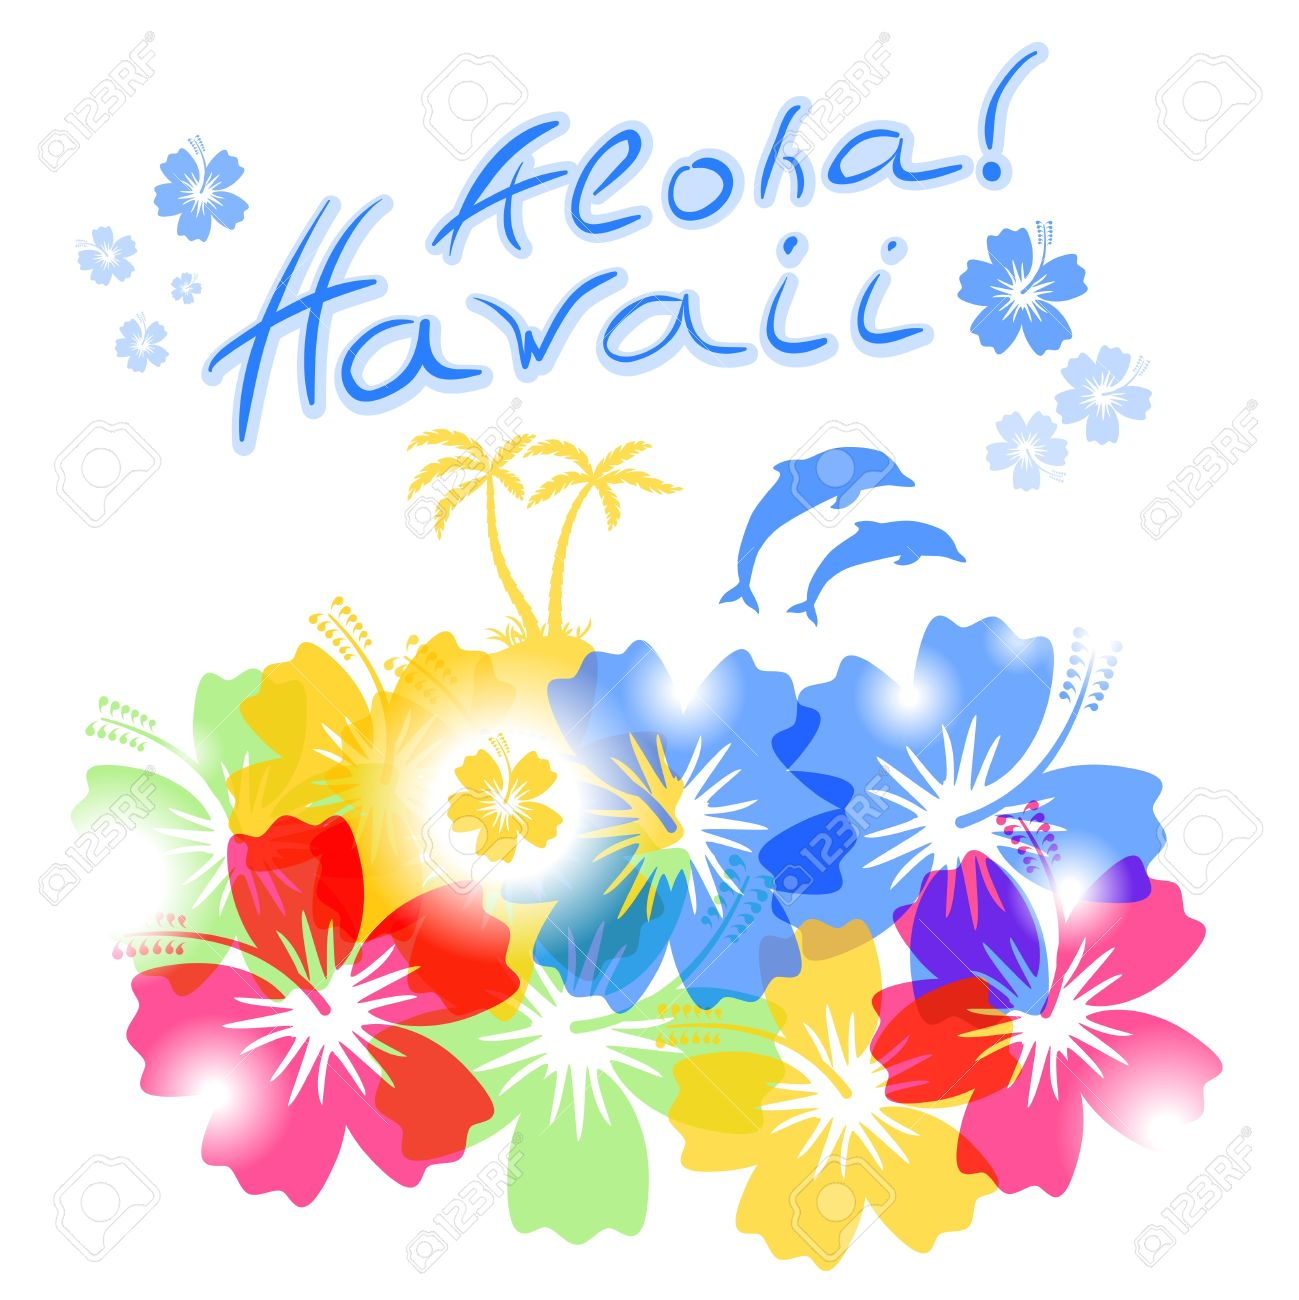 Aloha Hawaii Background With Palm Trees Silhouettes And Hibiscus Flowers Stock Vector